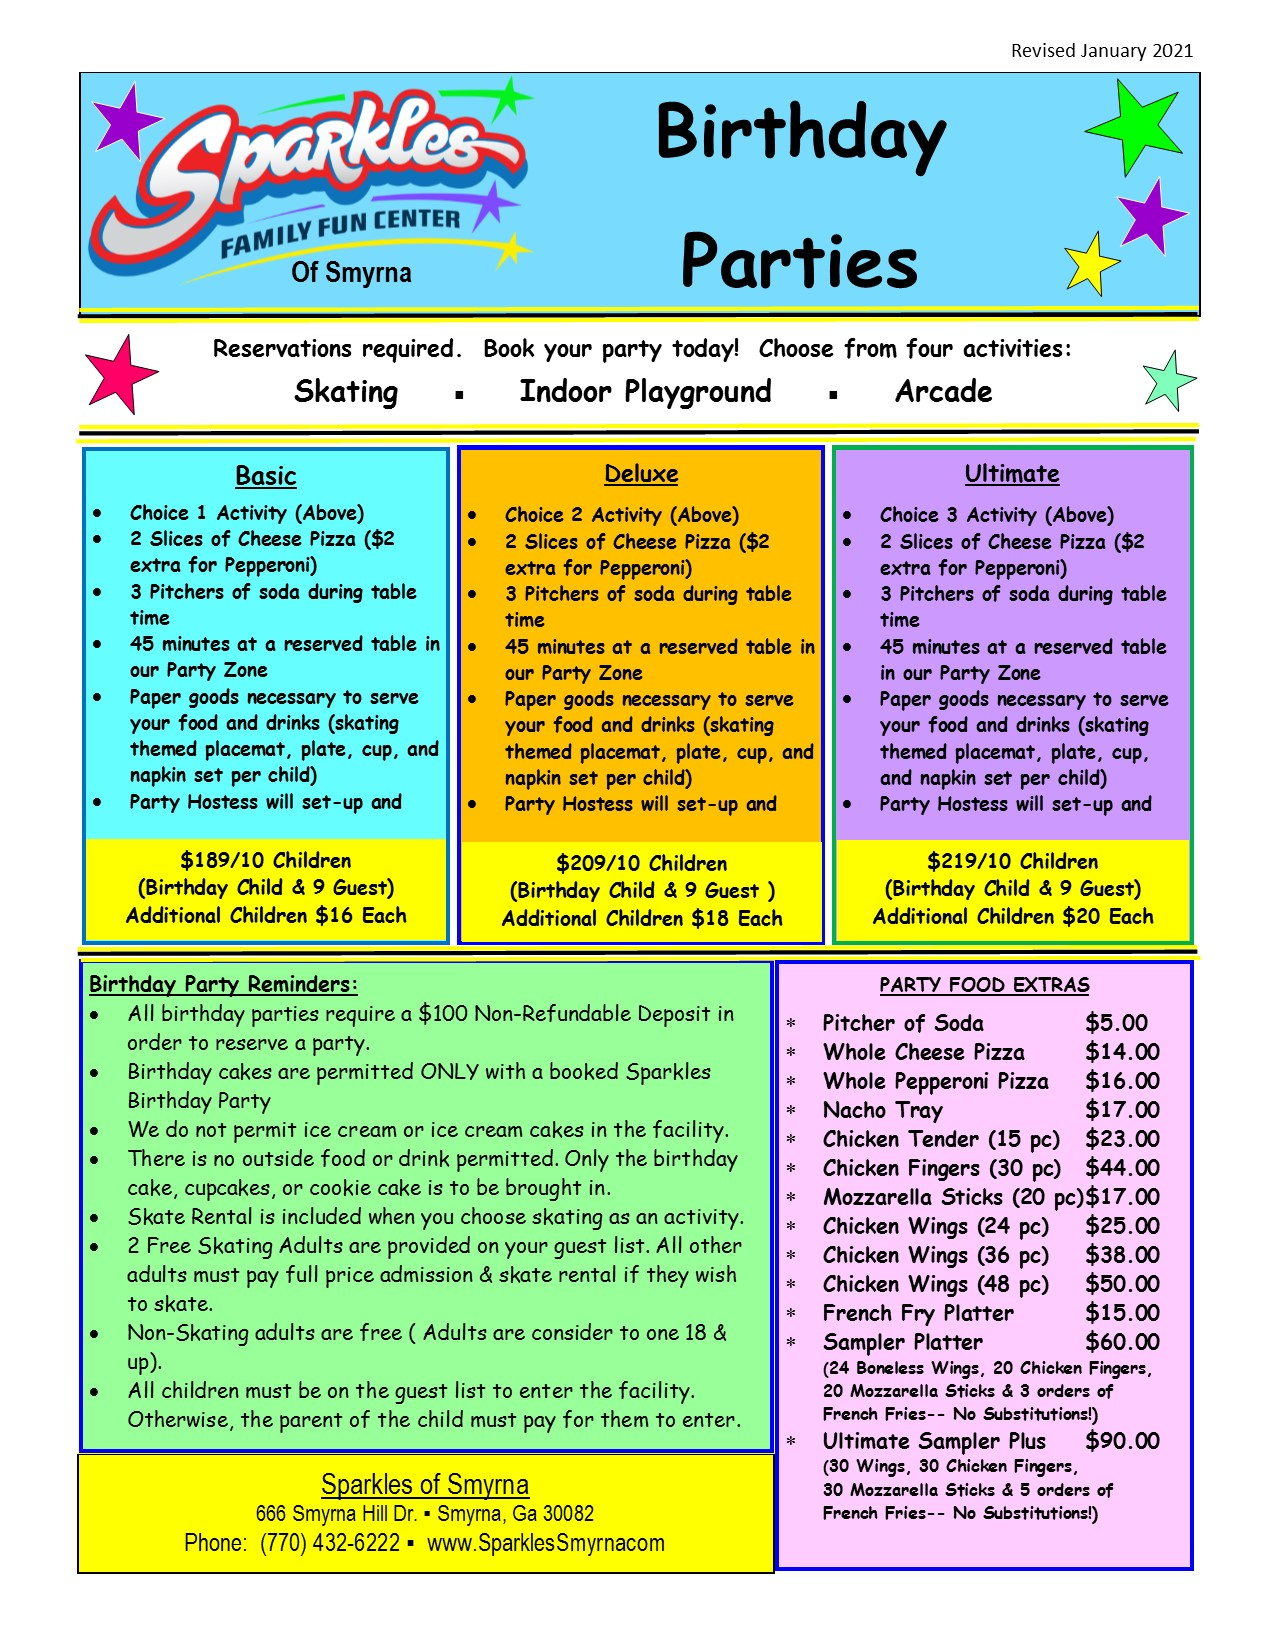 Standard Birthday Party Packages